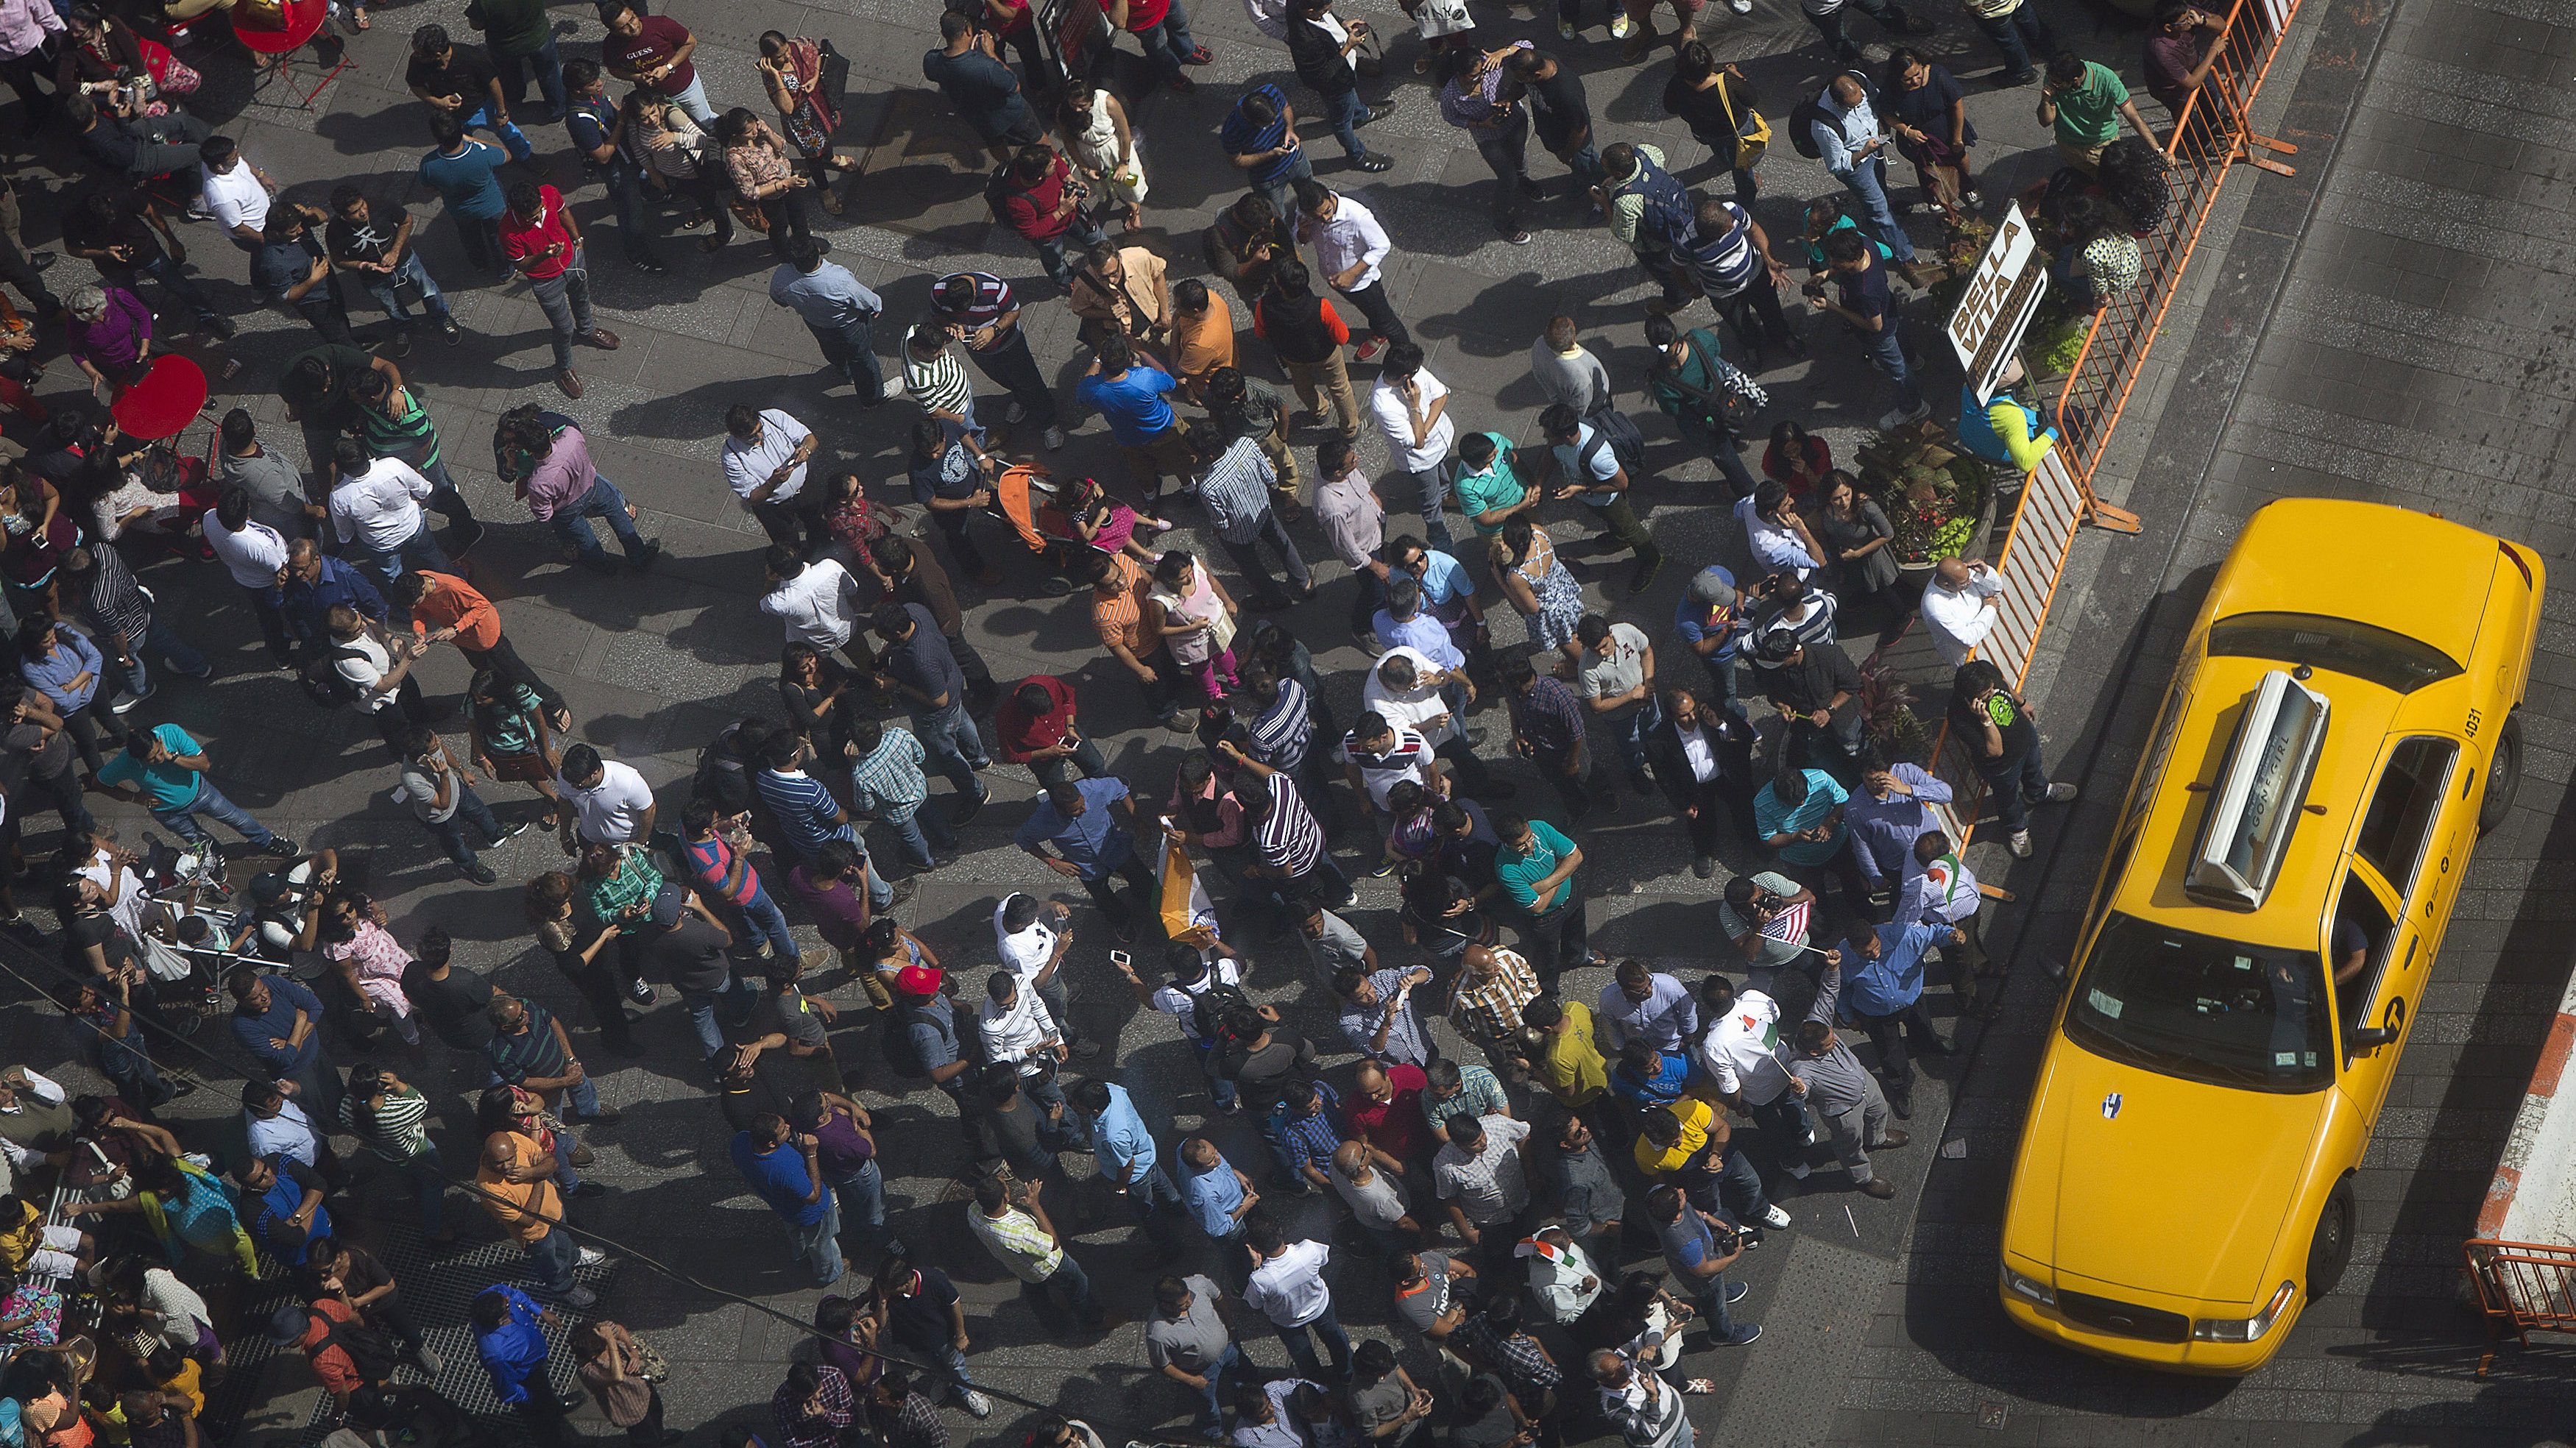 Supporters gather with a large crowd of people in Times Square to watch the speech by India's Prime Minister Narendra Modi simulcast on a giant screen in New York September 28, 2014.